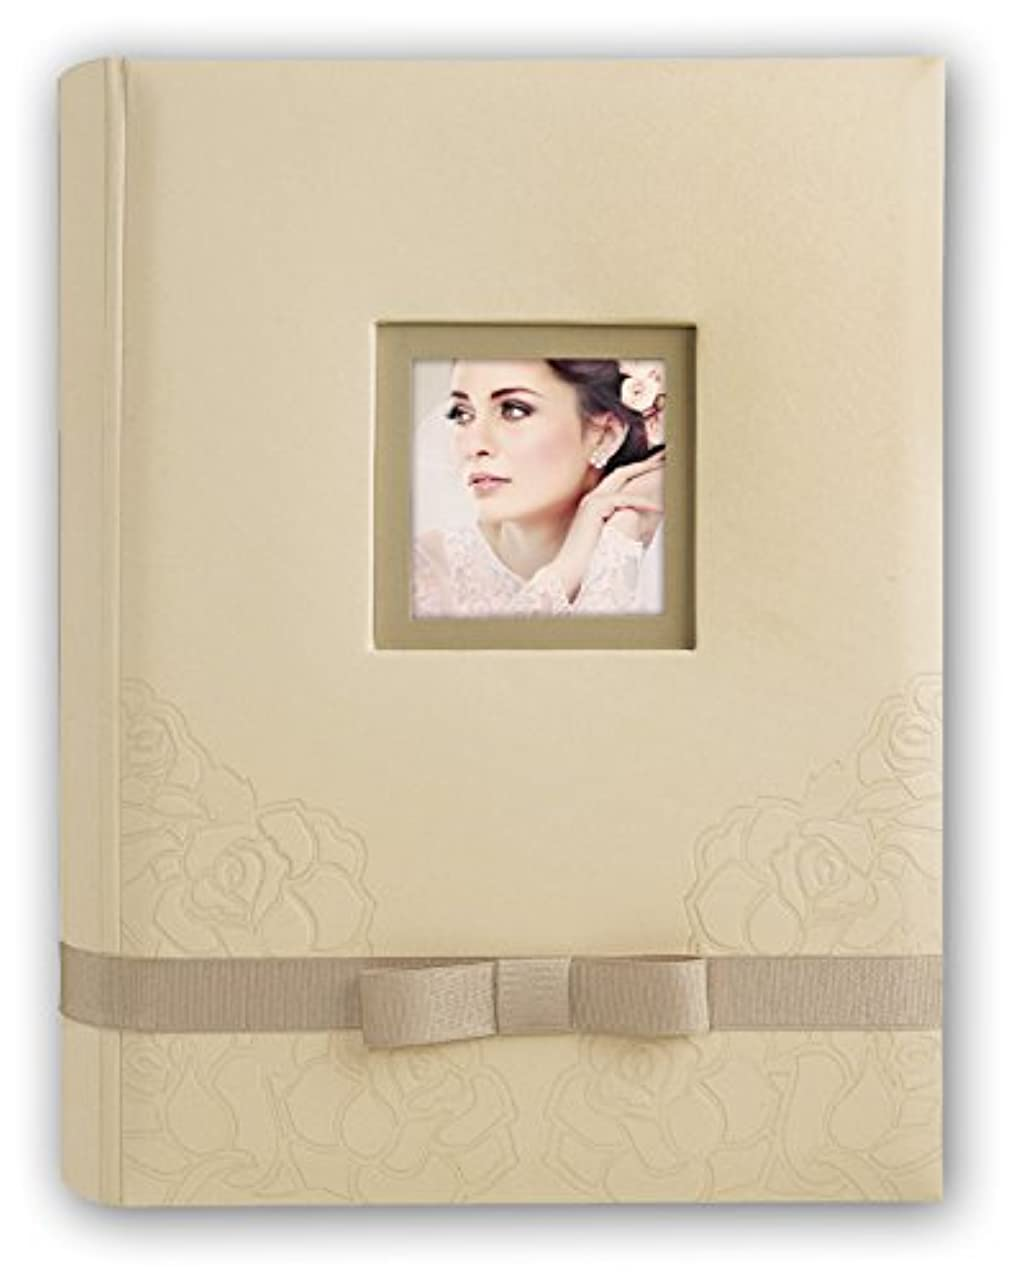 Zep re243230?Rebecca Wedding Traditional Photo Album 60?Pages Laminated Paper 24?x 32?cm Beige